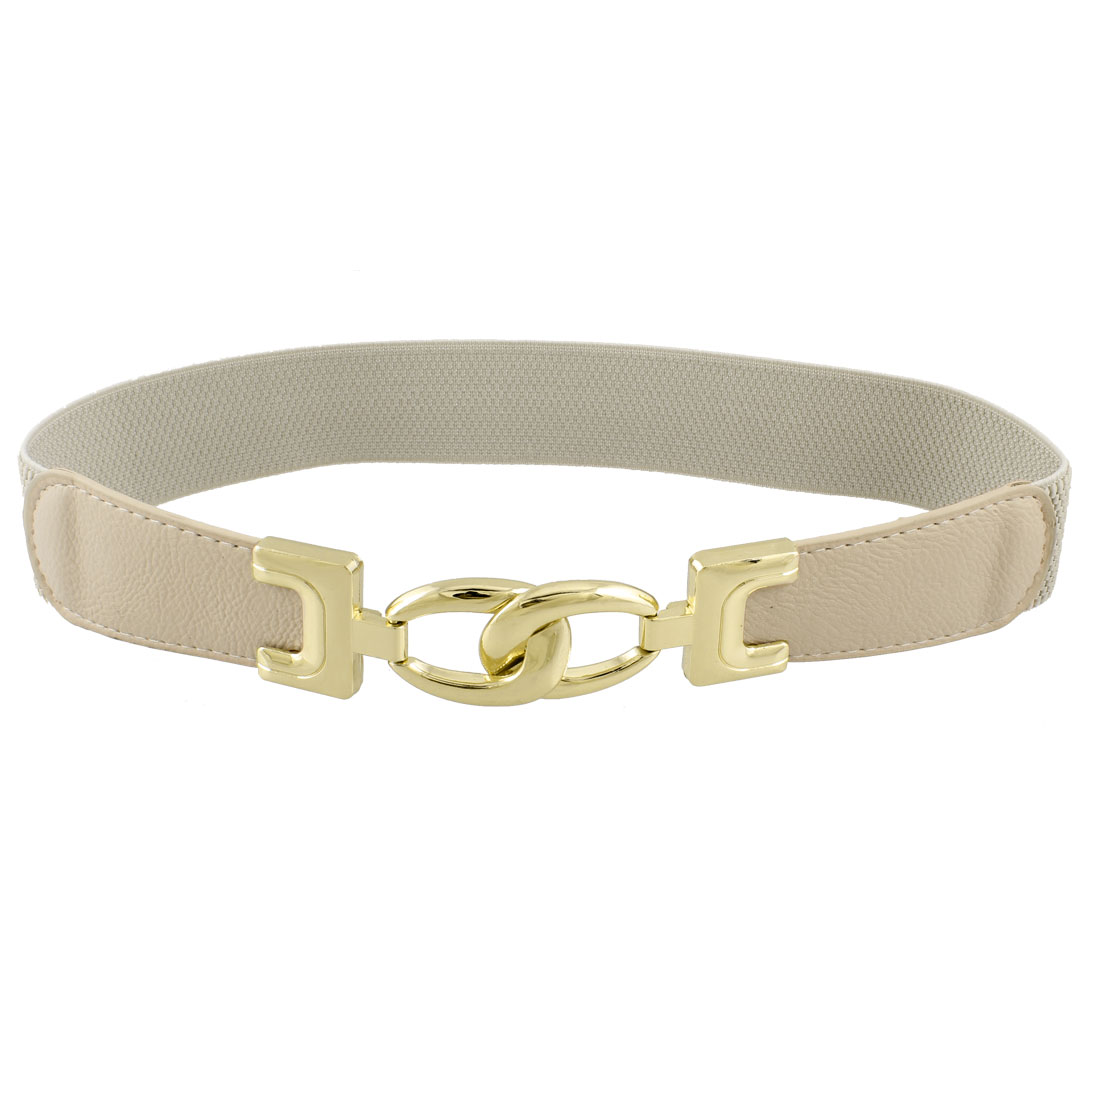 Ladies Elastic Band Gold Tone Interlocking Buckle Waistbelt Cinch Belt Khaki